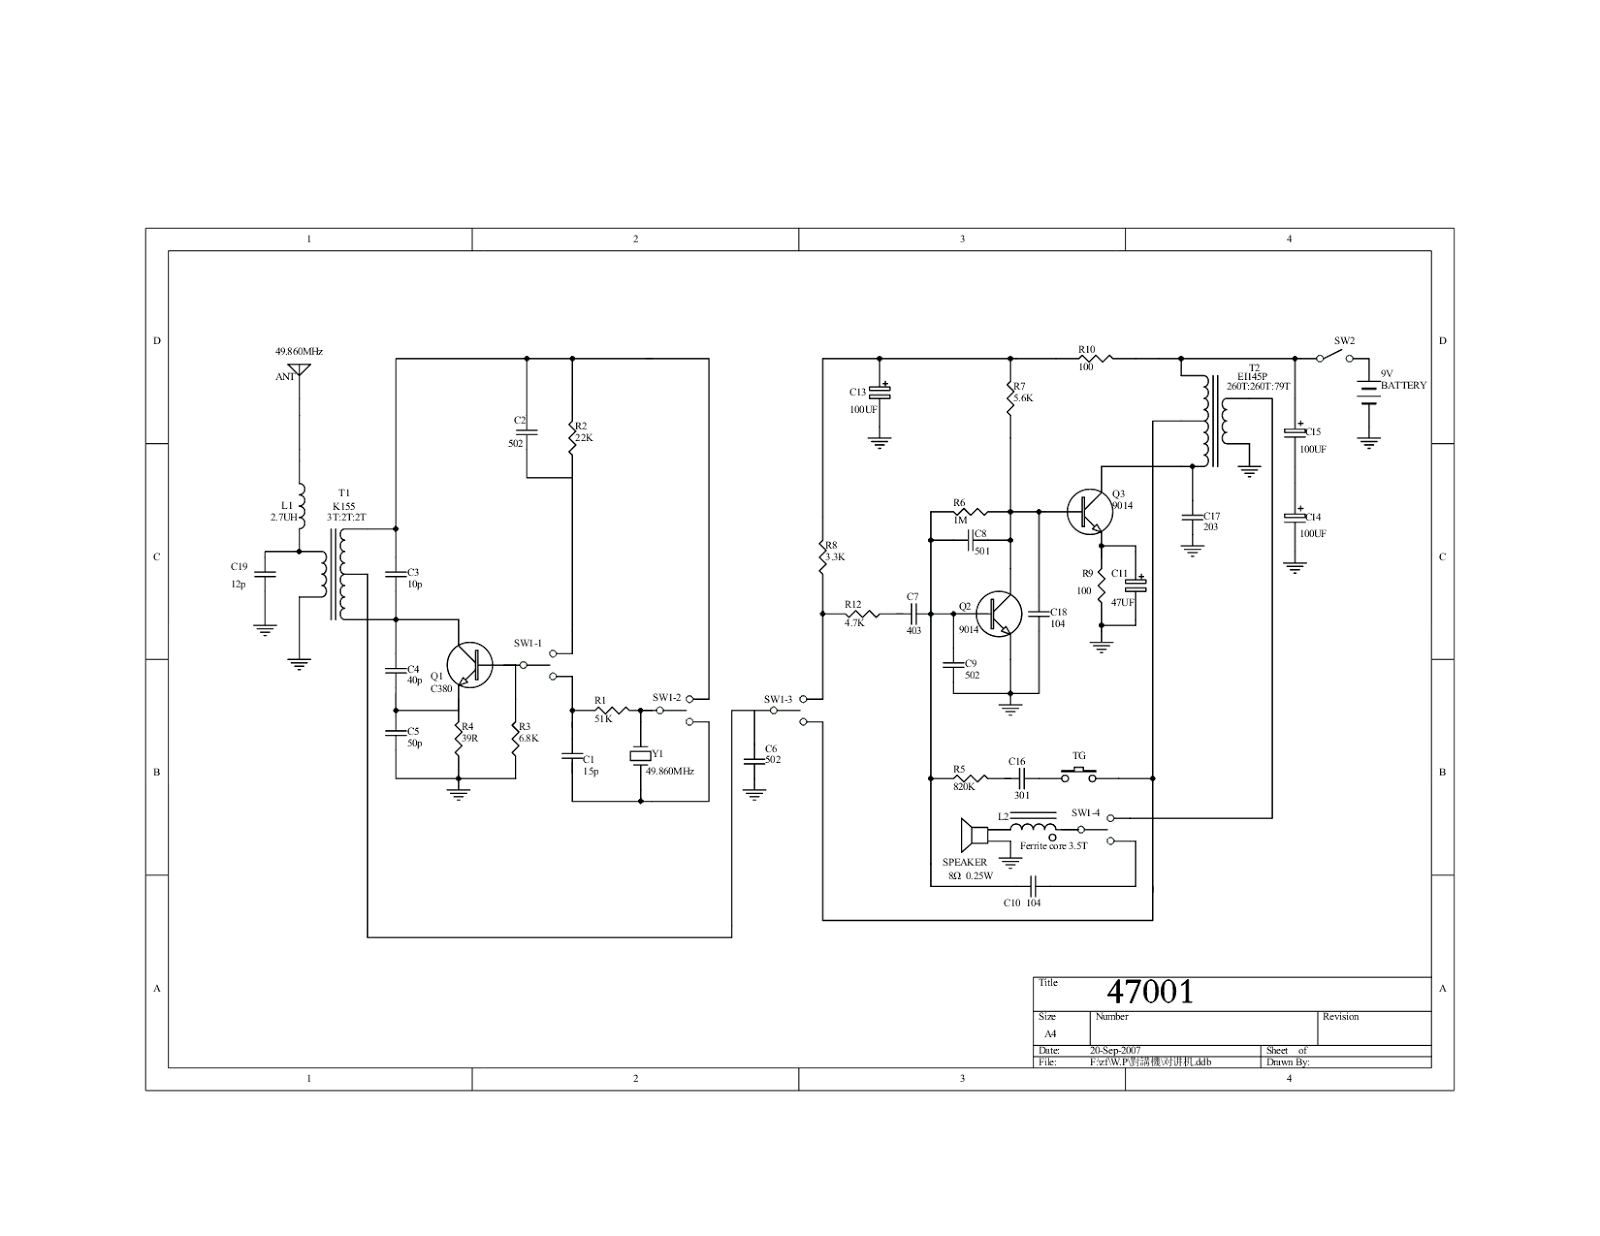 Simple Walkie Talkie Circuit Diagram Easy To Build